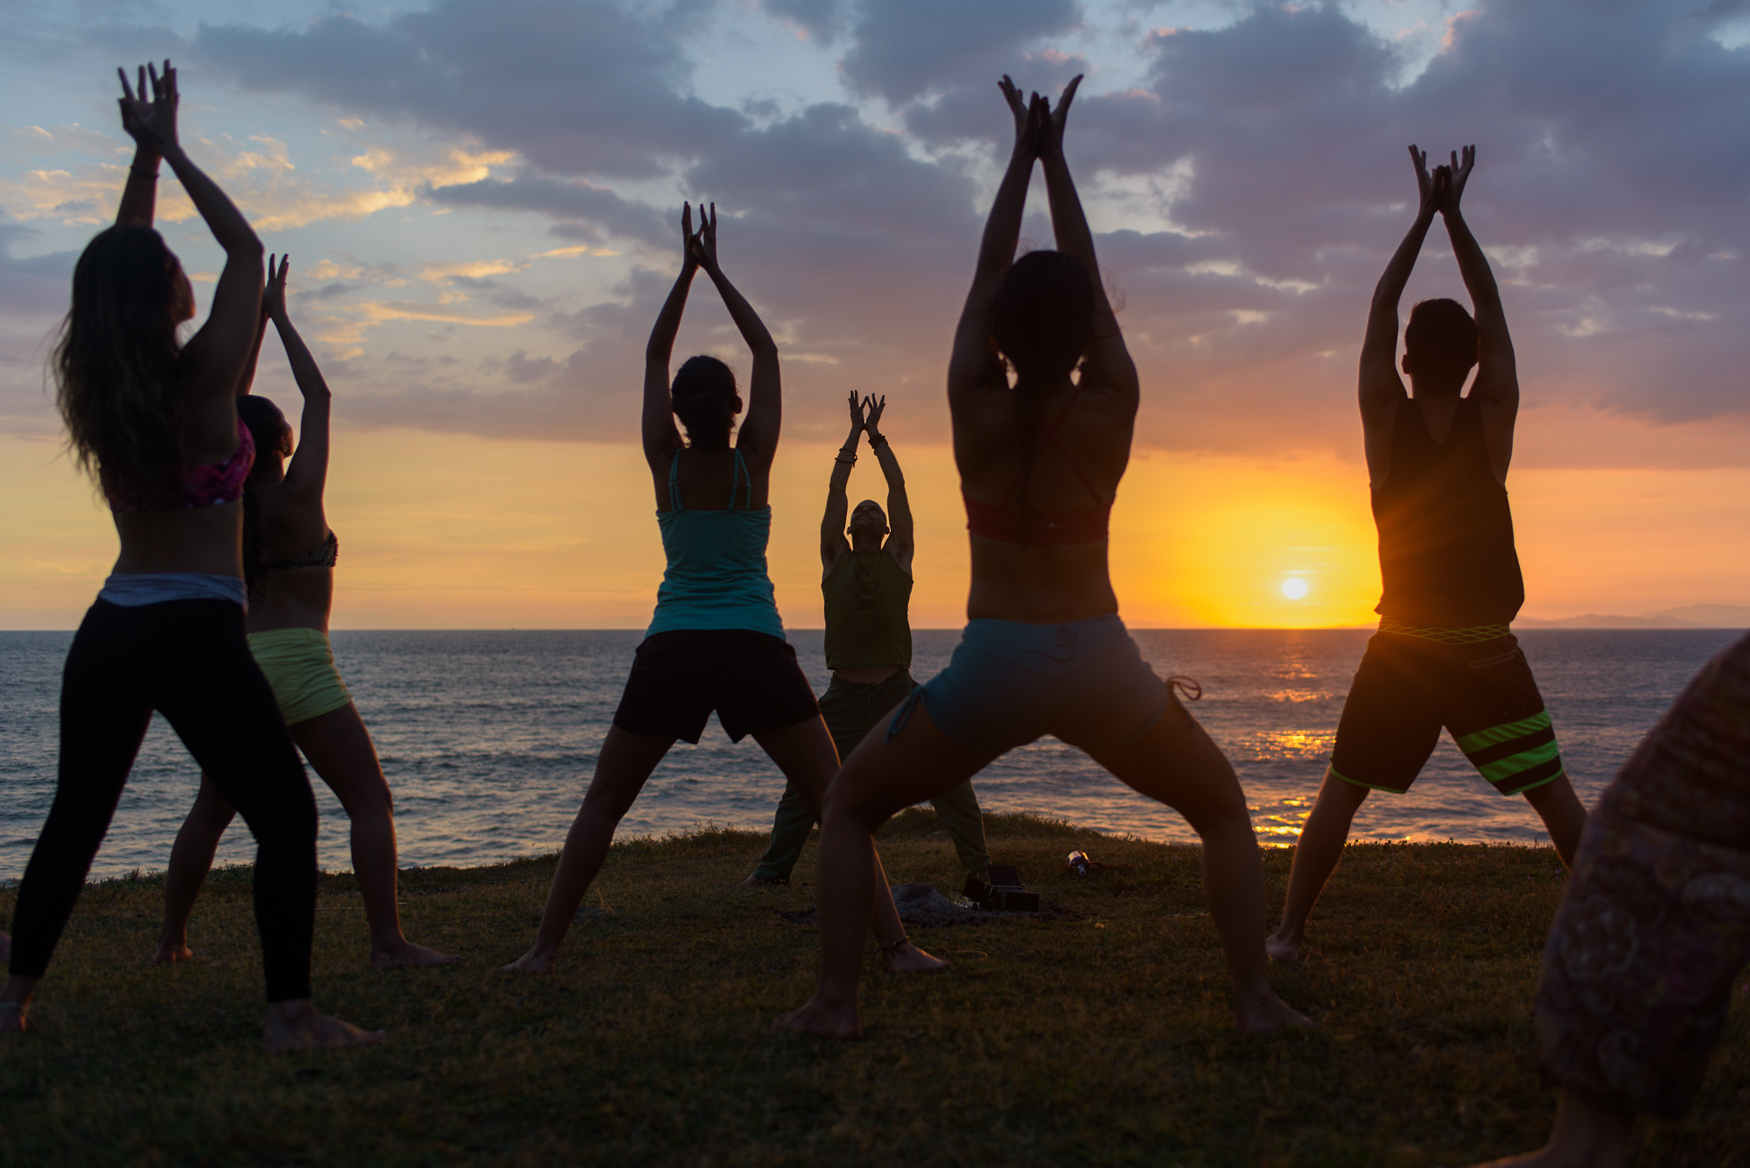 Yoga-Inspired-Practices-Photography-Costa-Rica-9.jpg